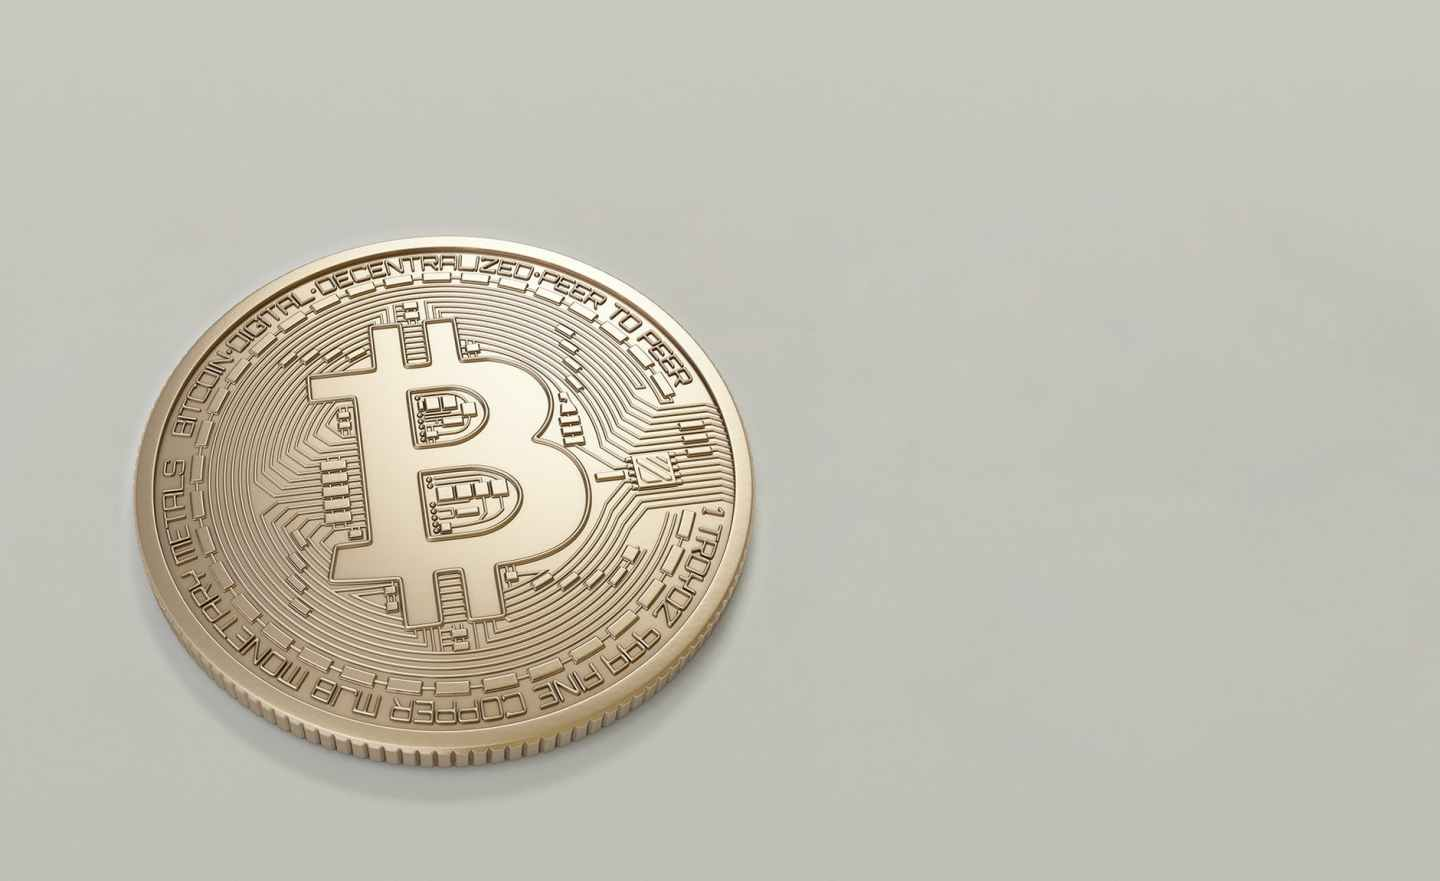 round gold colored bitcoin